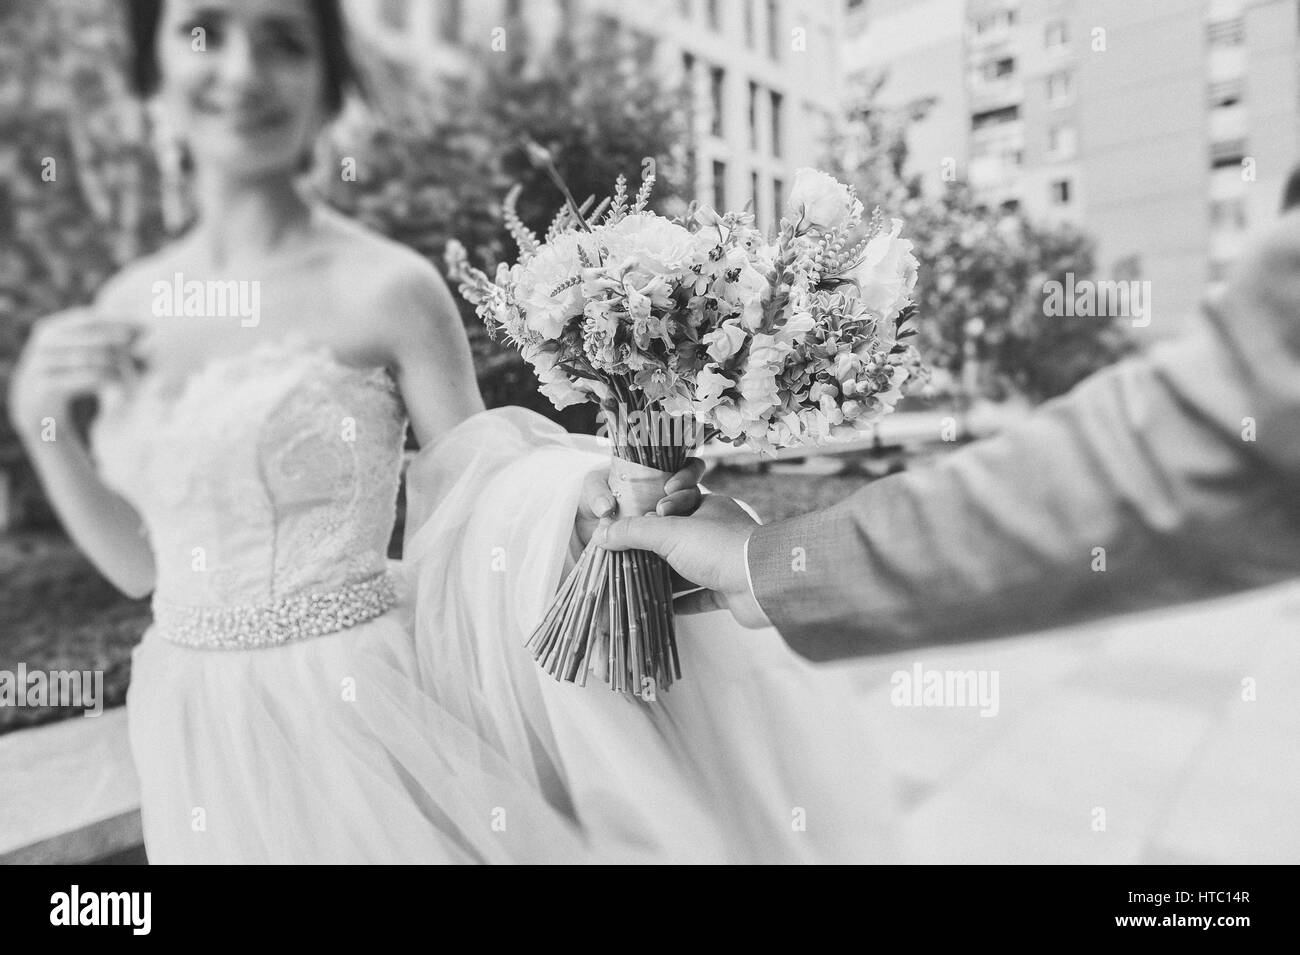 Bride and groom hold a bouquet. Focus on the bouquet. Newly married couple walk on paths holding hands and looking - Stock Image